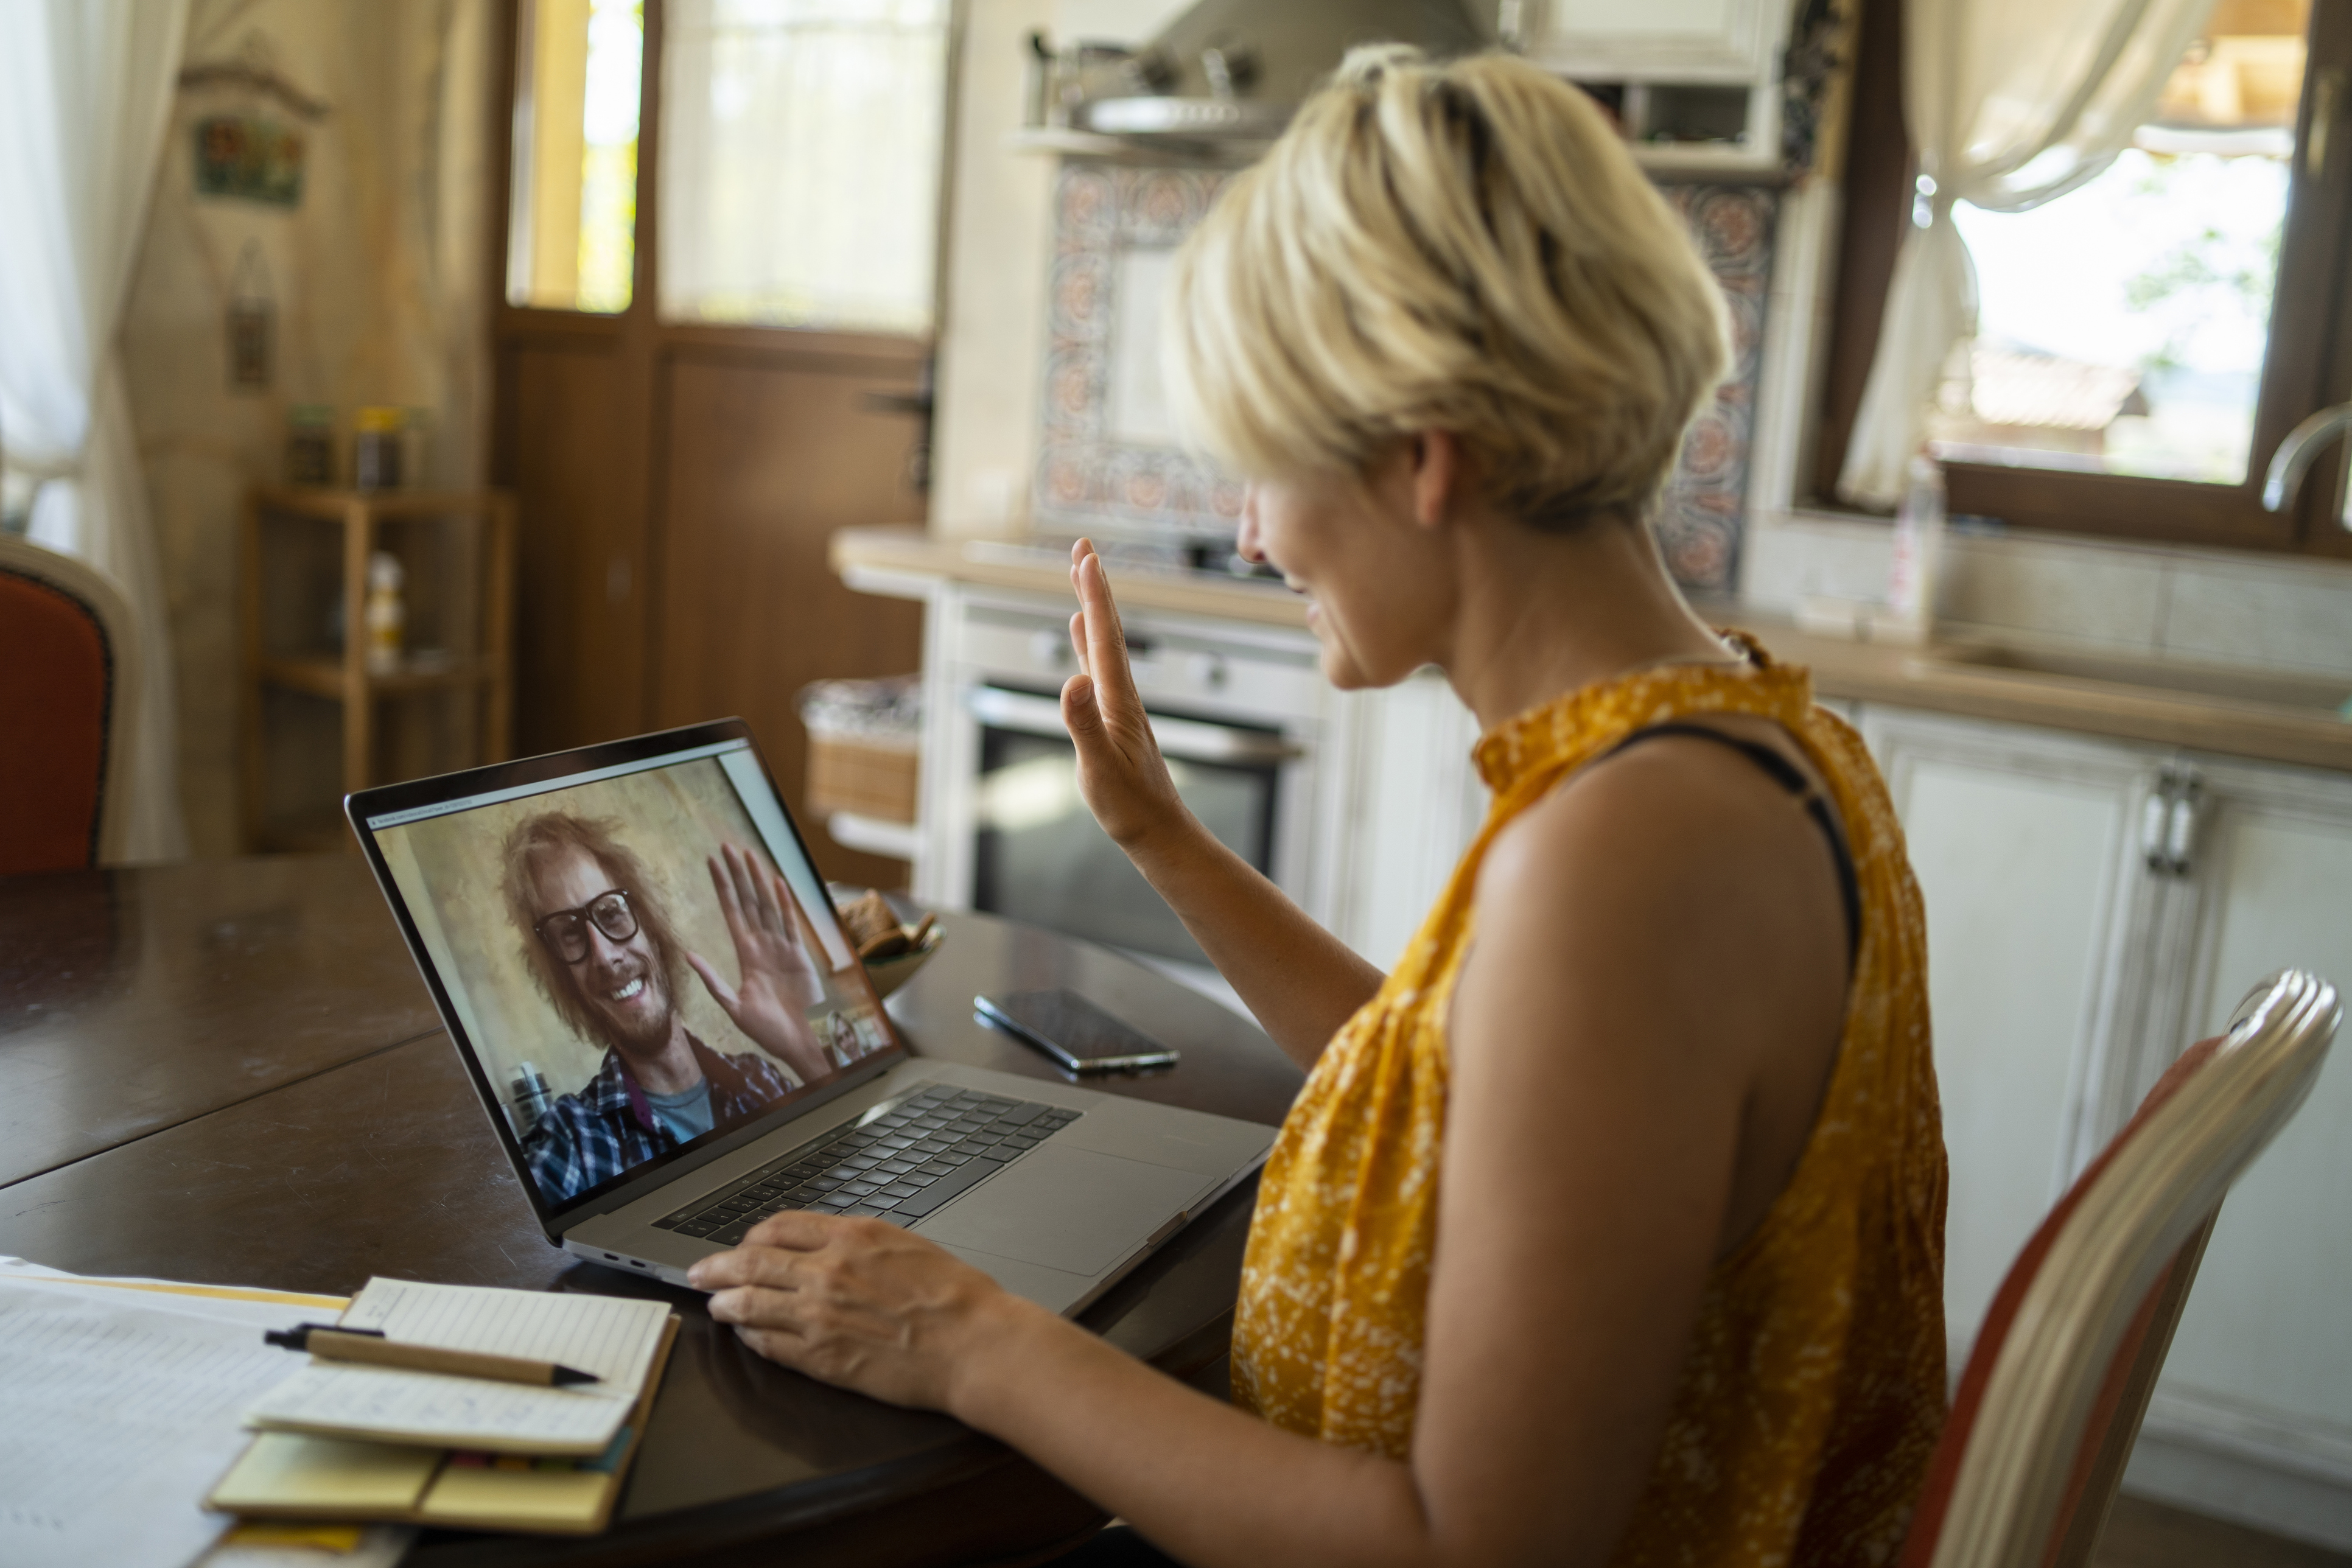 Online Dating At 35. Is It Worth It?